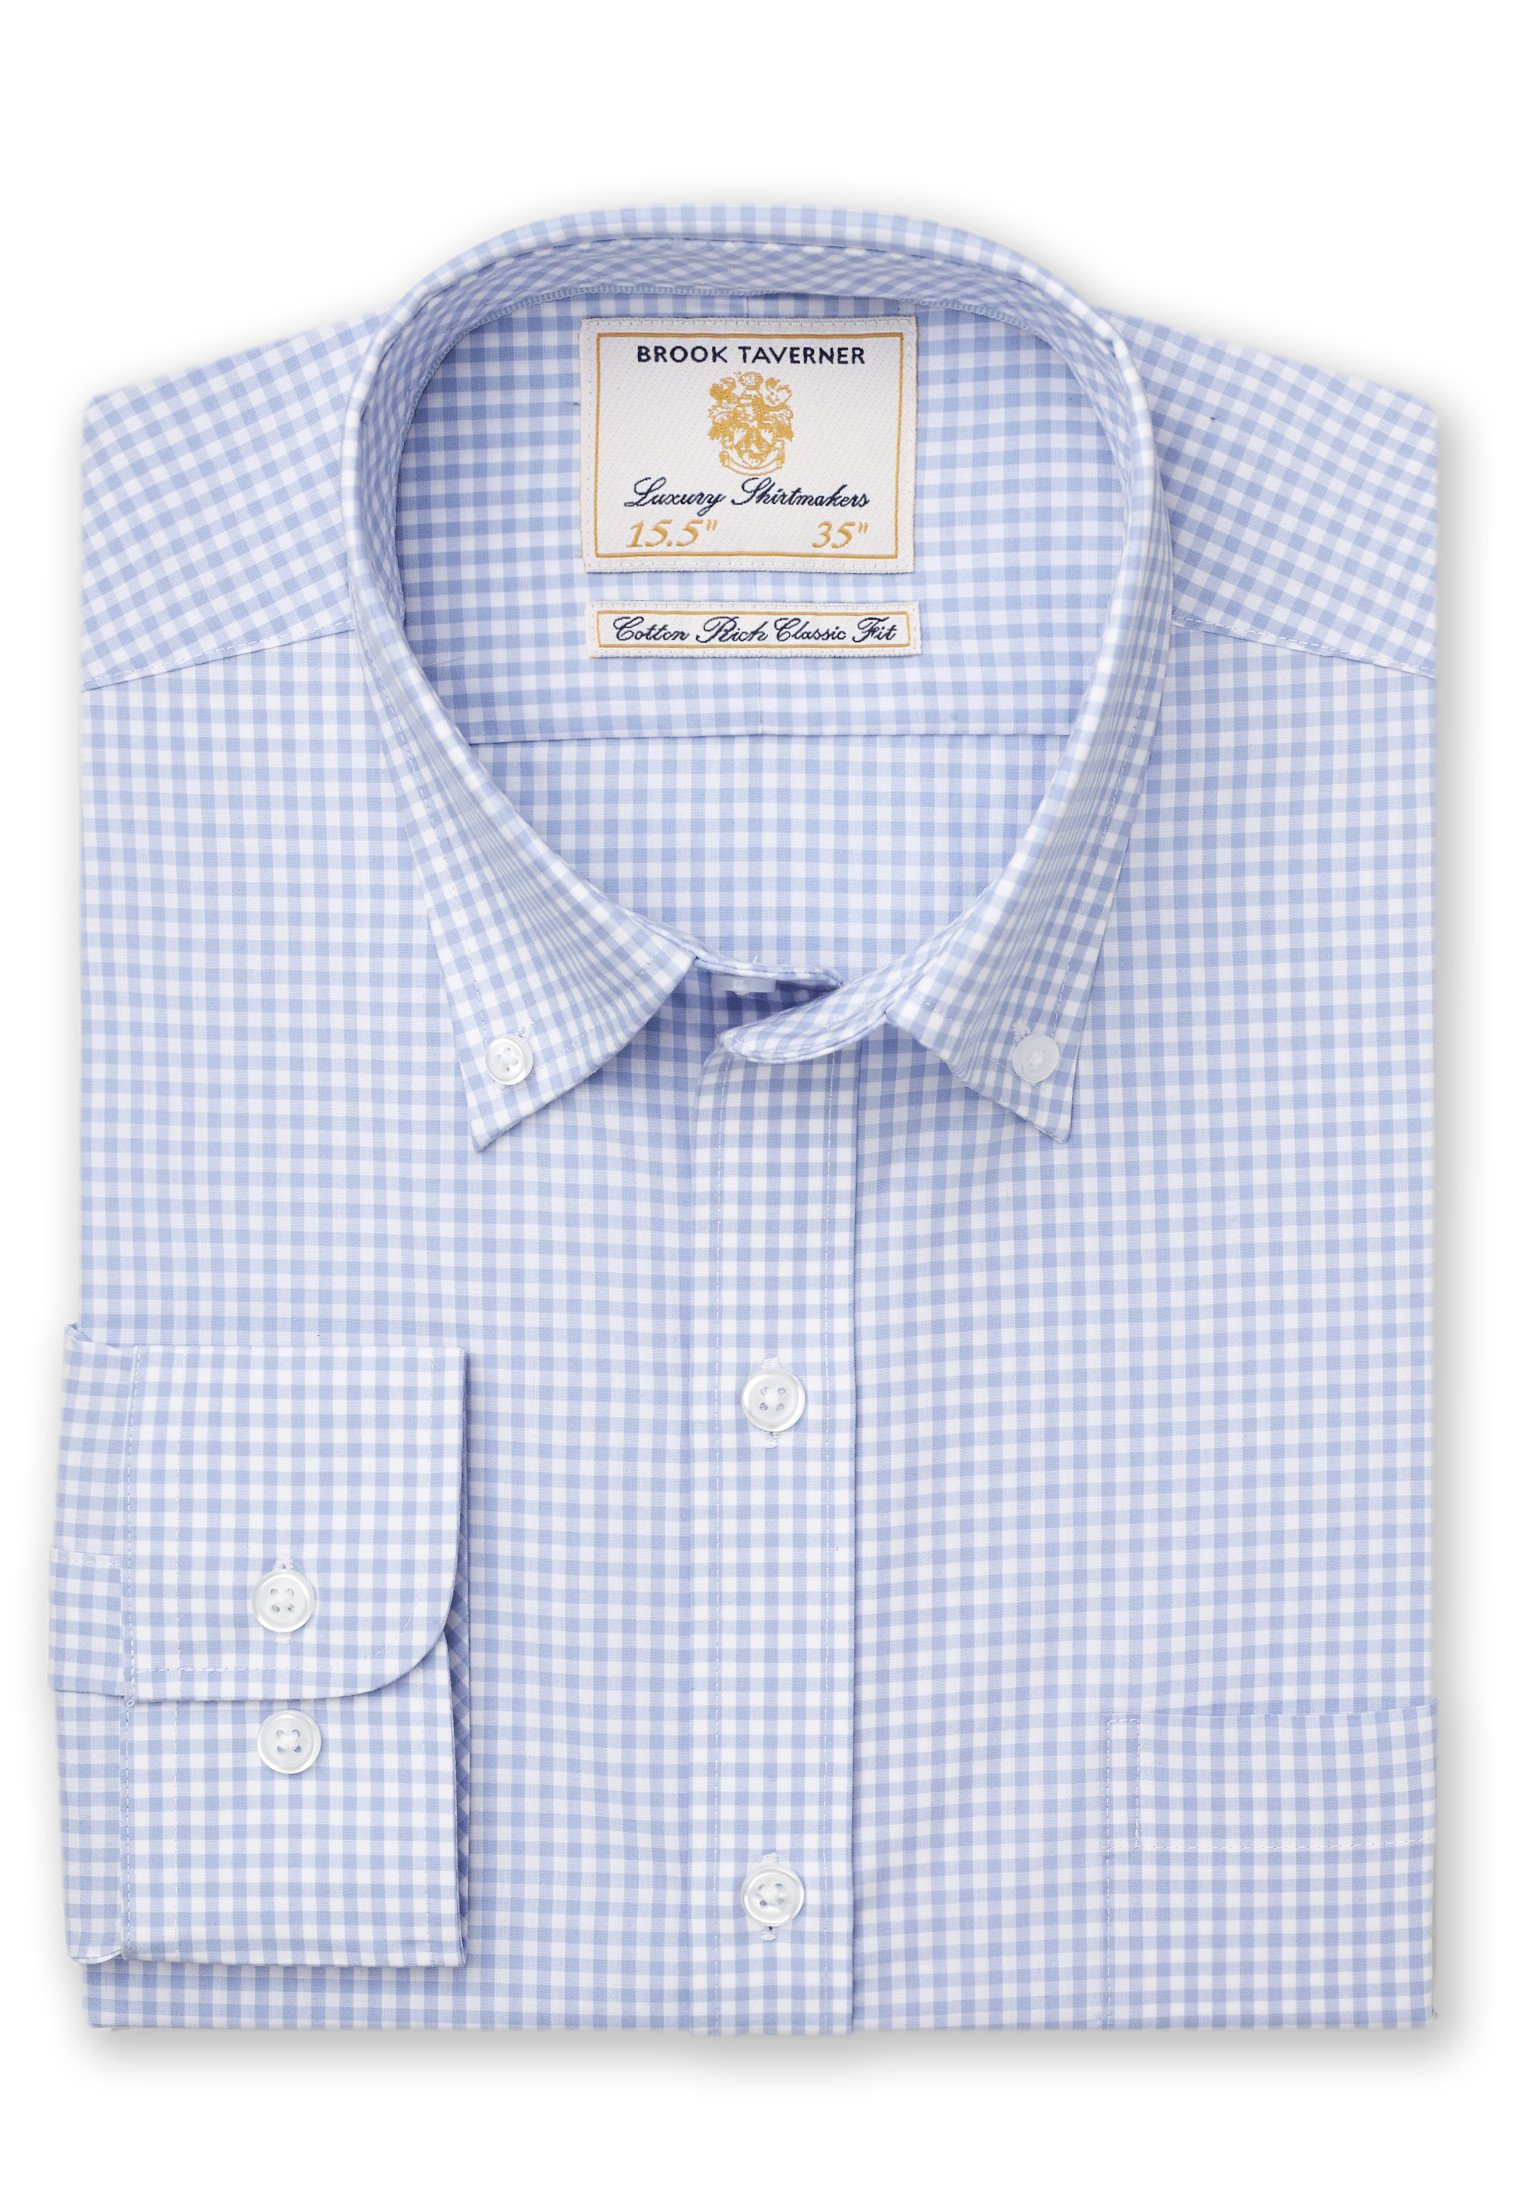 Brook Taverner Gingam Check Long Sleeve shirt in Sky